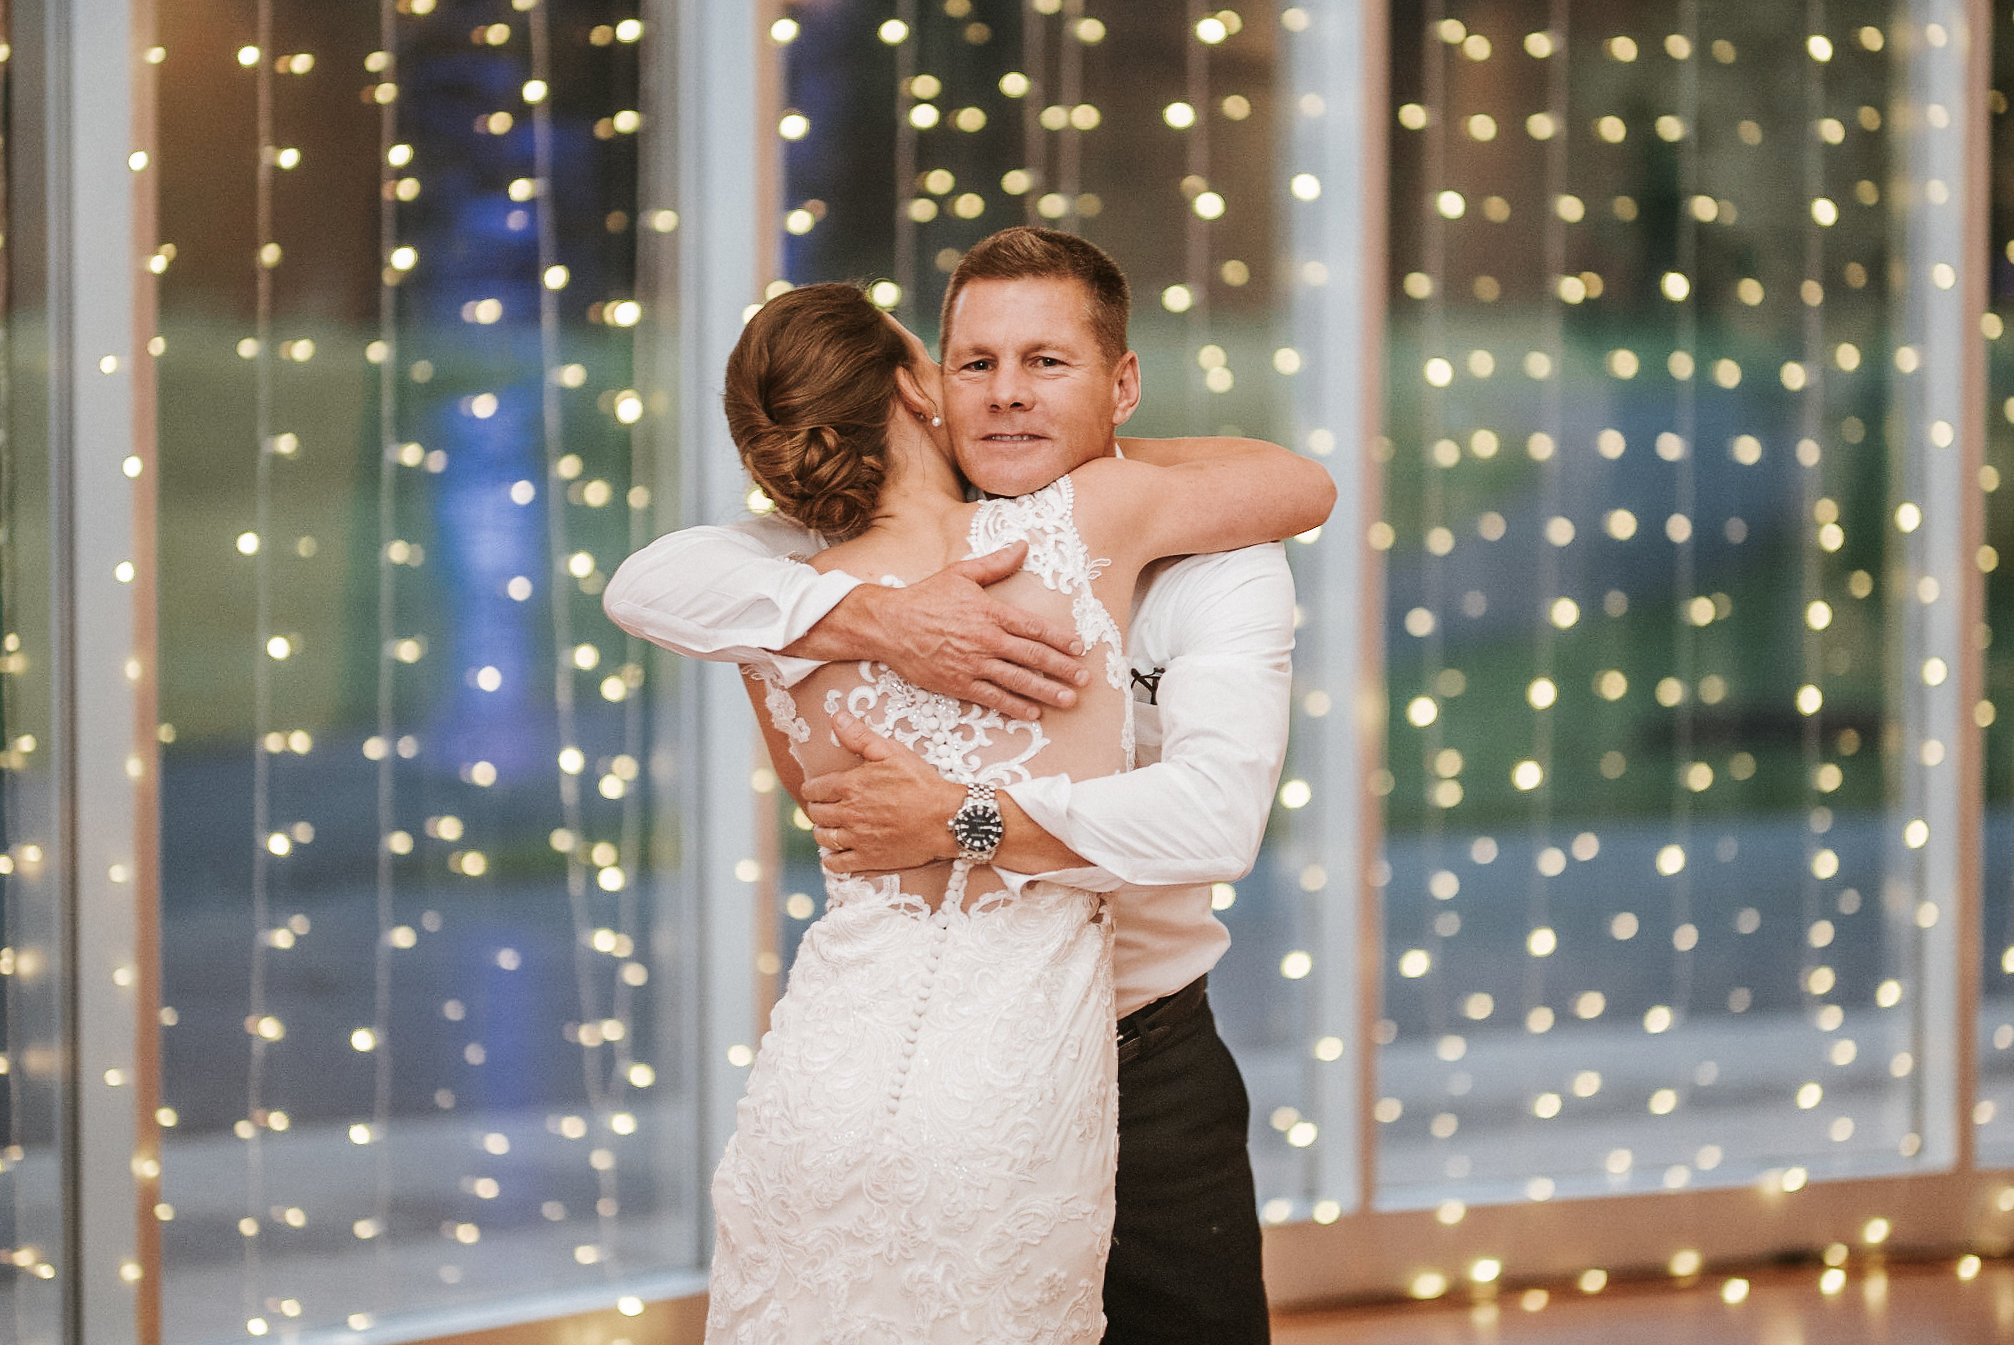 Father and daughter hugging during dance